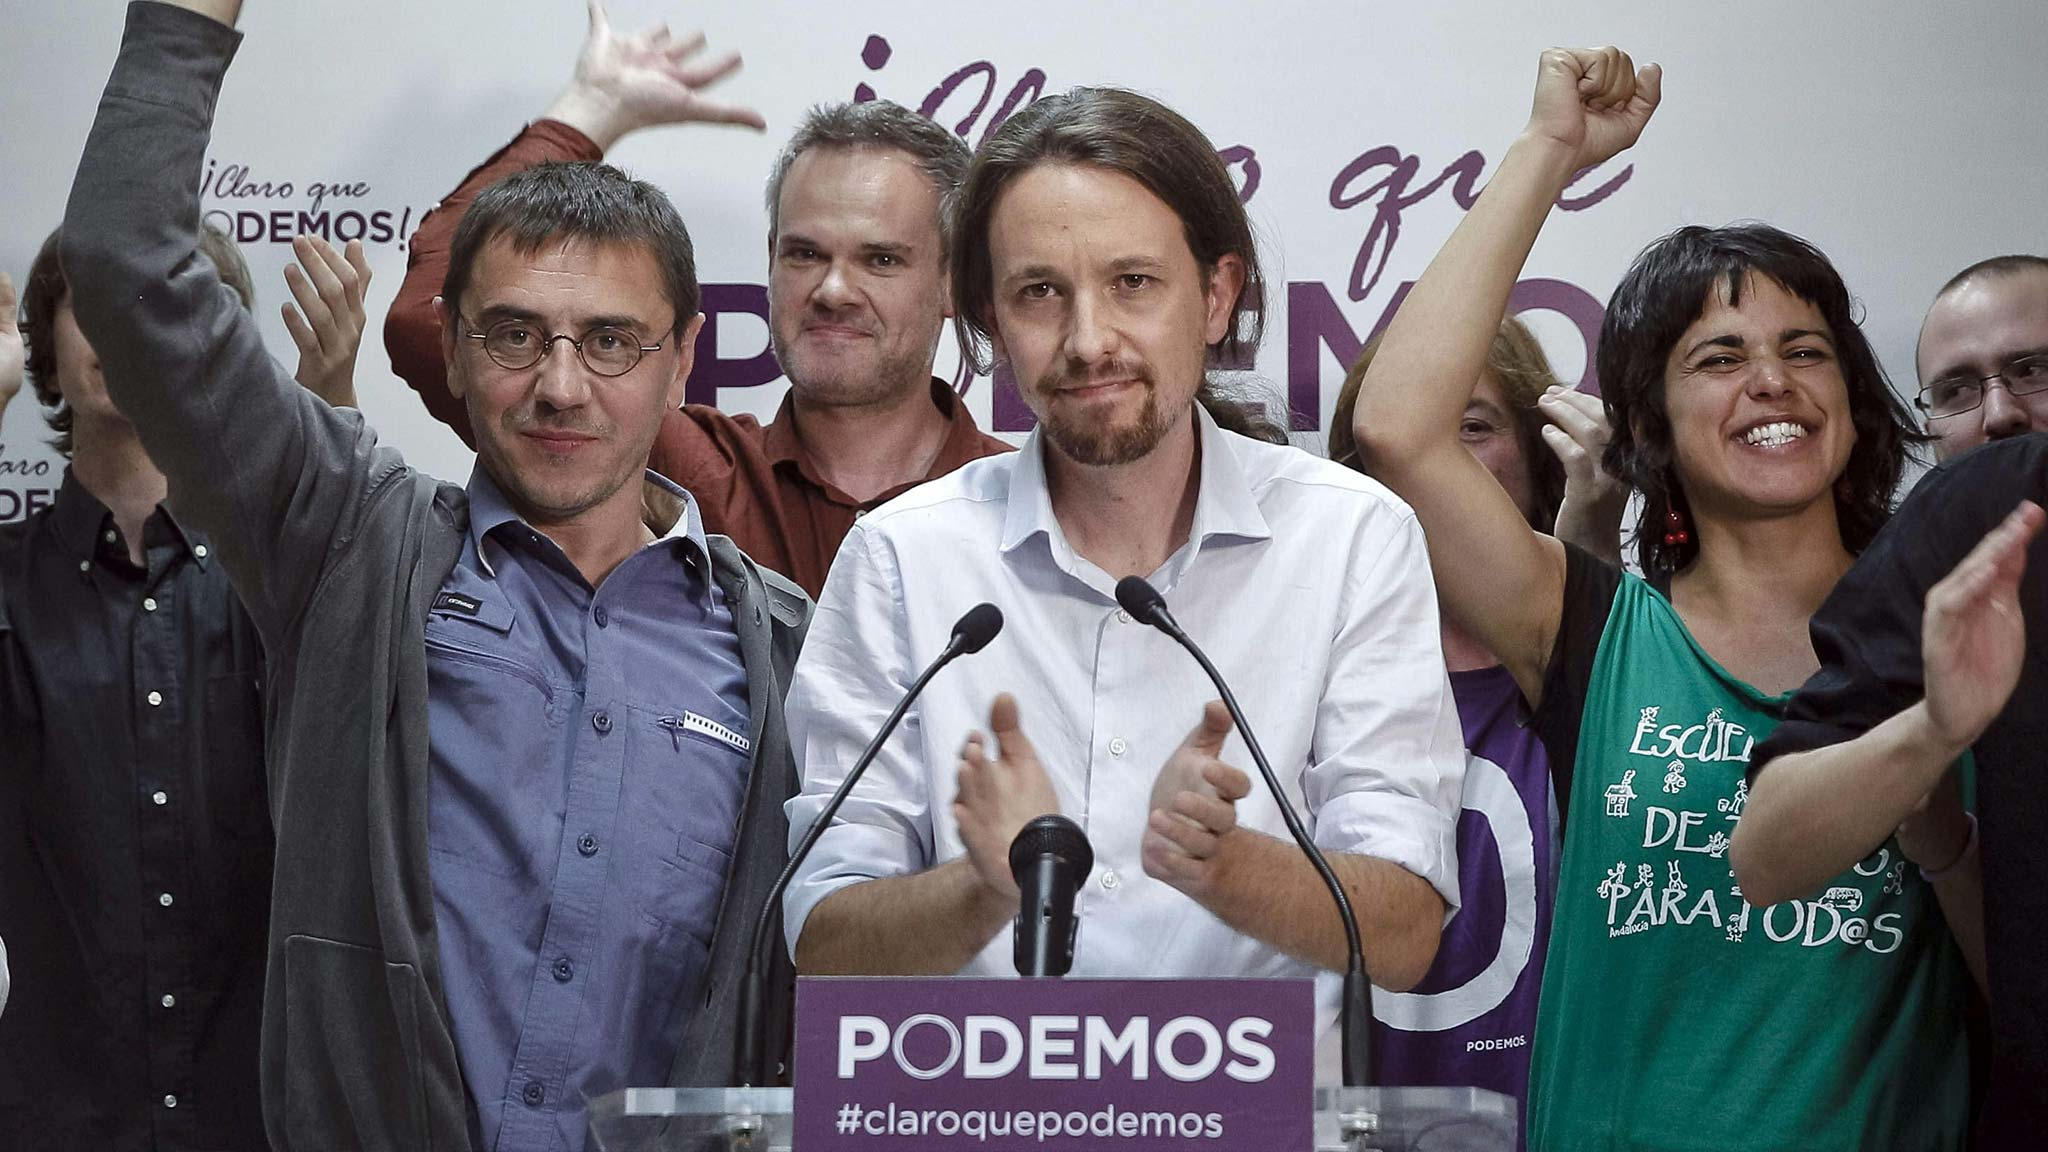 Podemos offer change from corrupt politicians